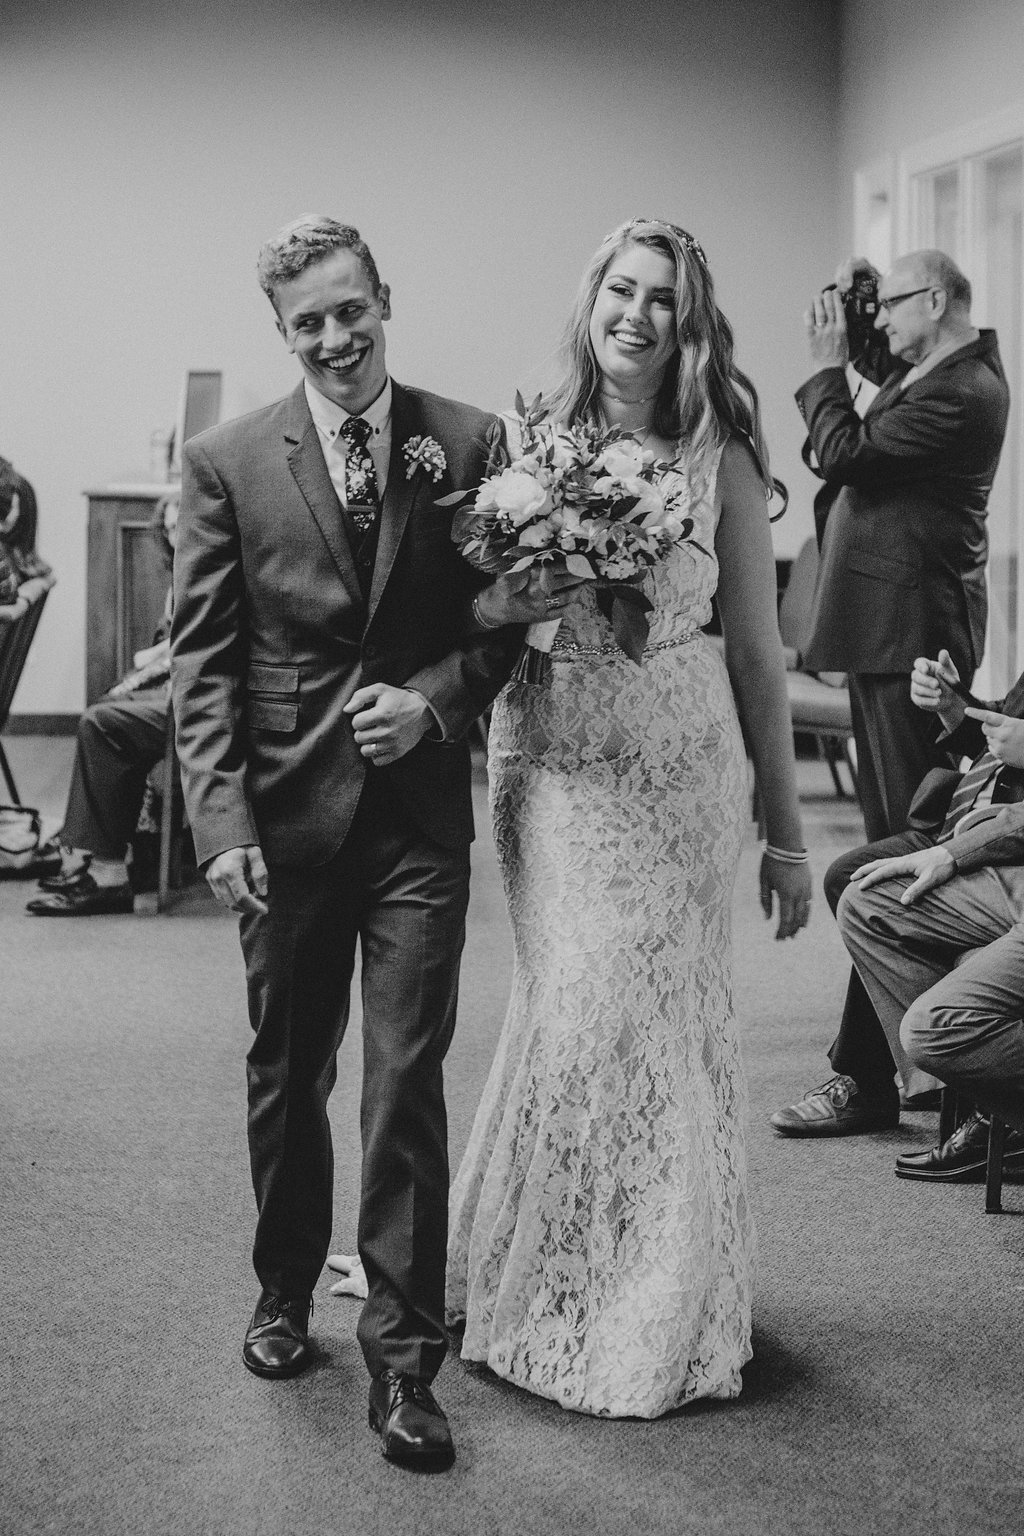 The happy Mr. and Mrs!